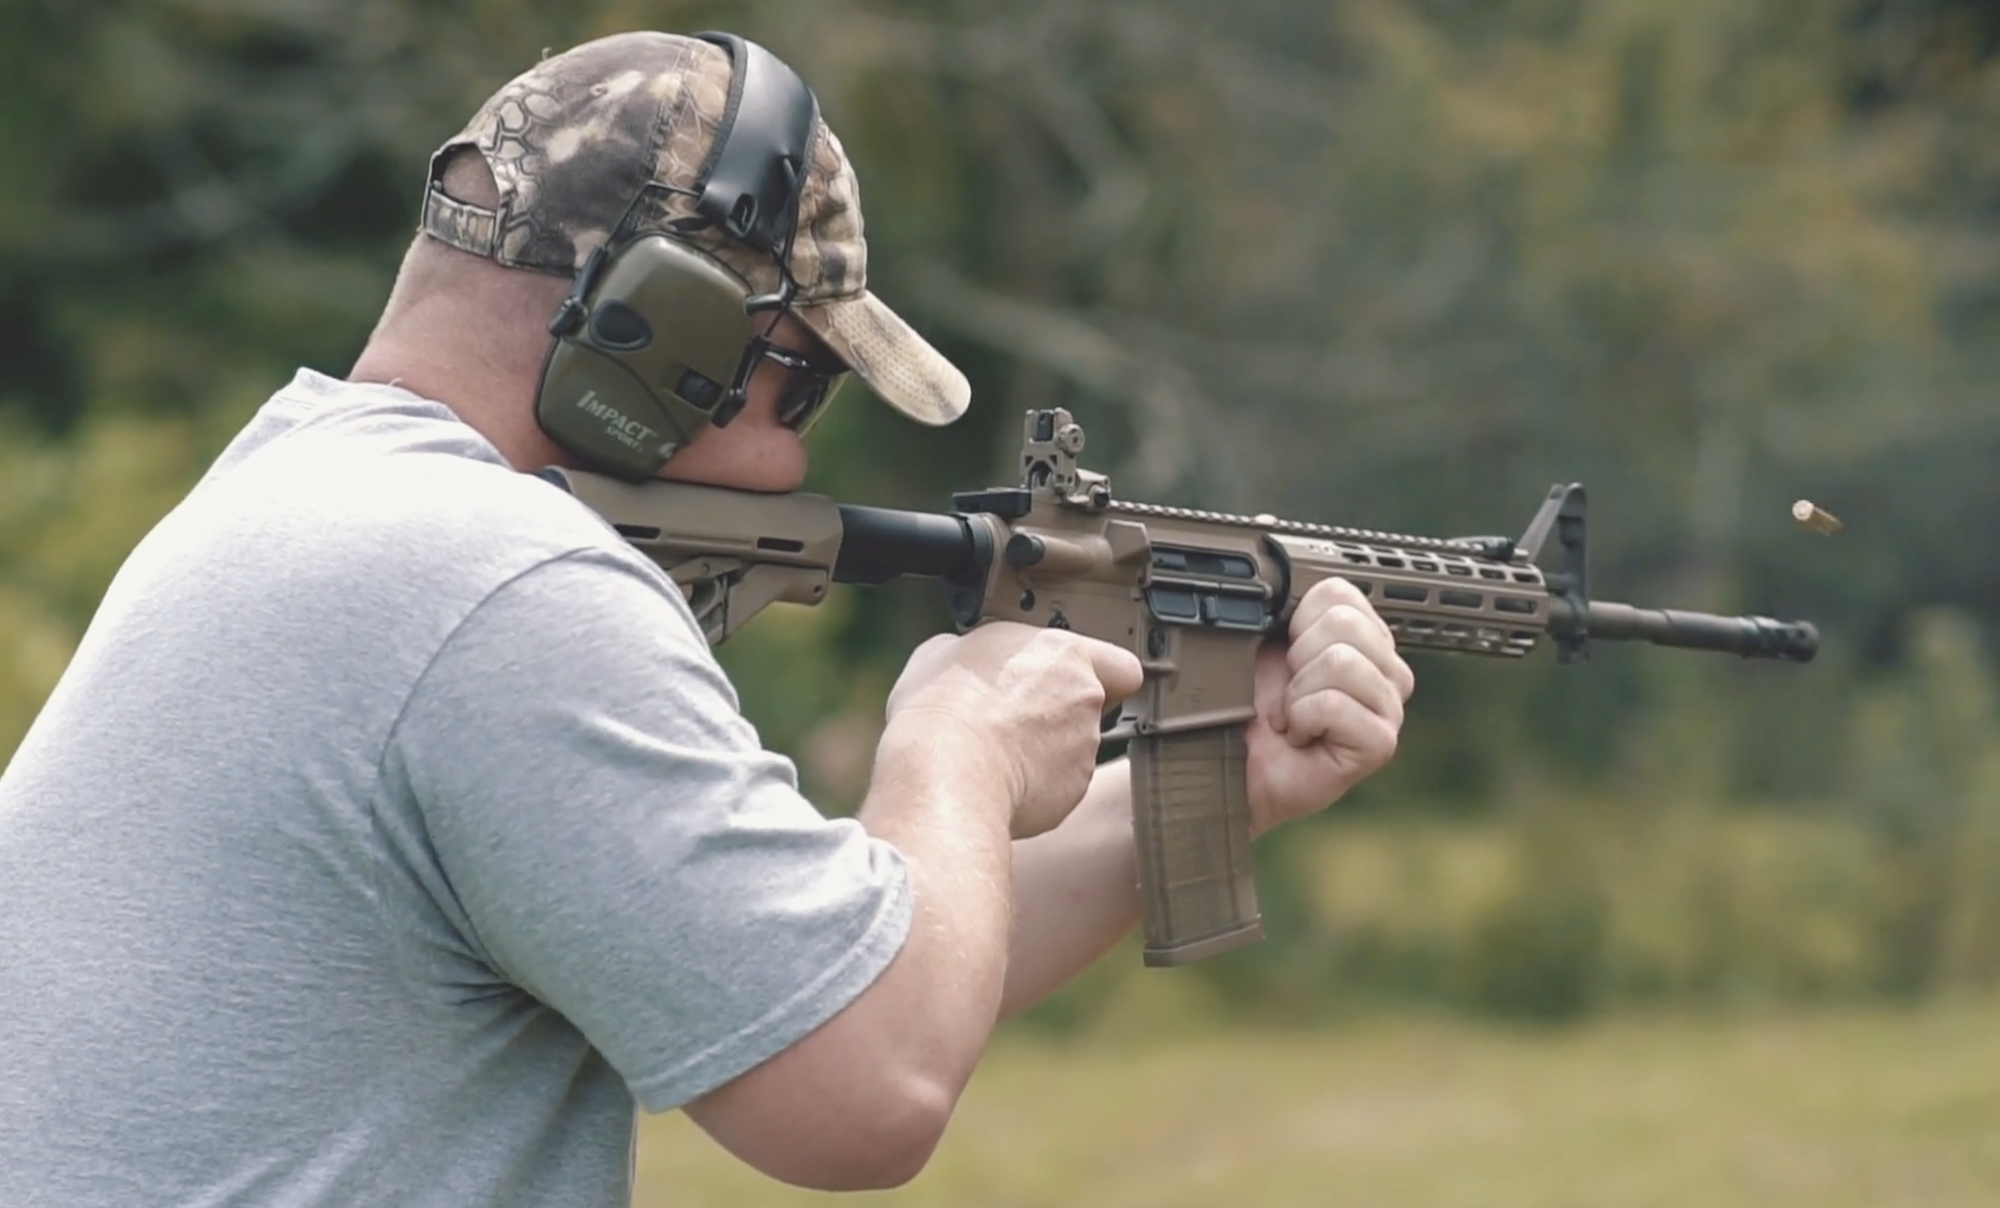 Shooting m855 with an ar-15 at the range